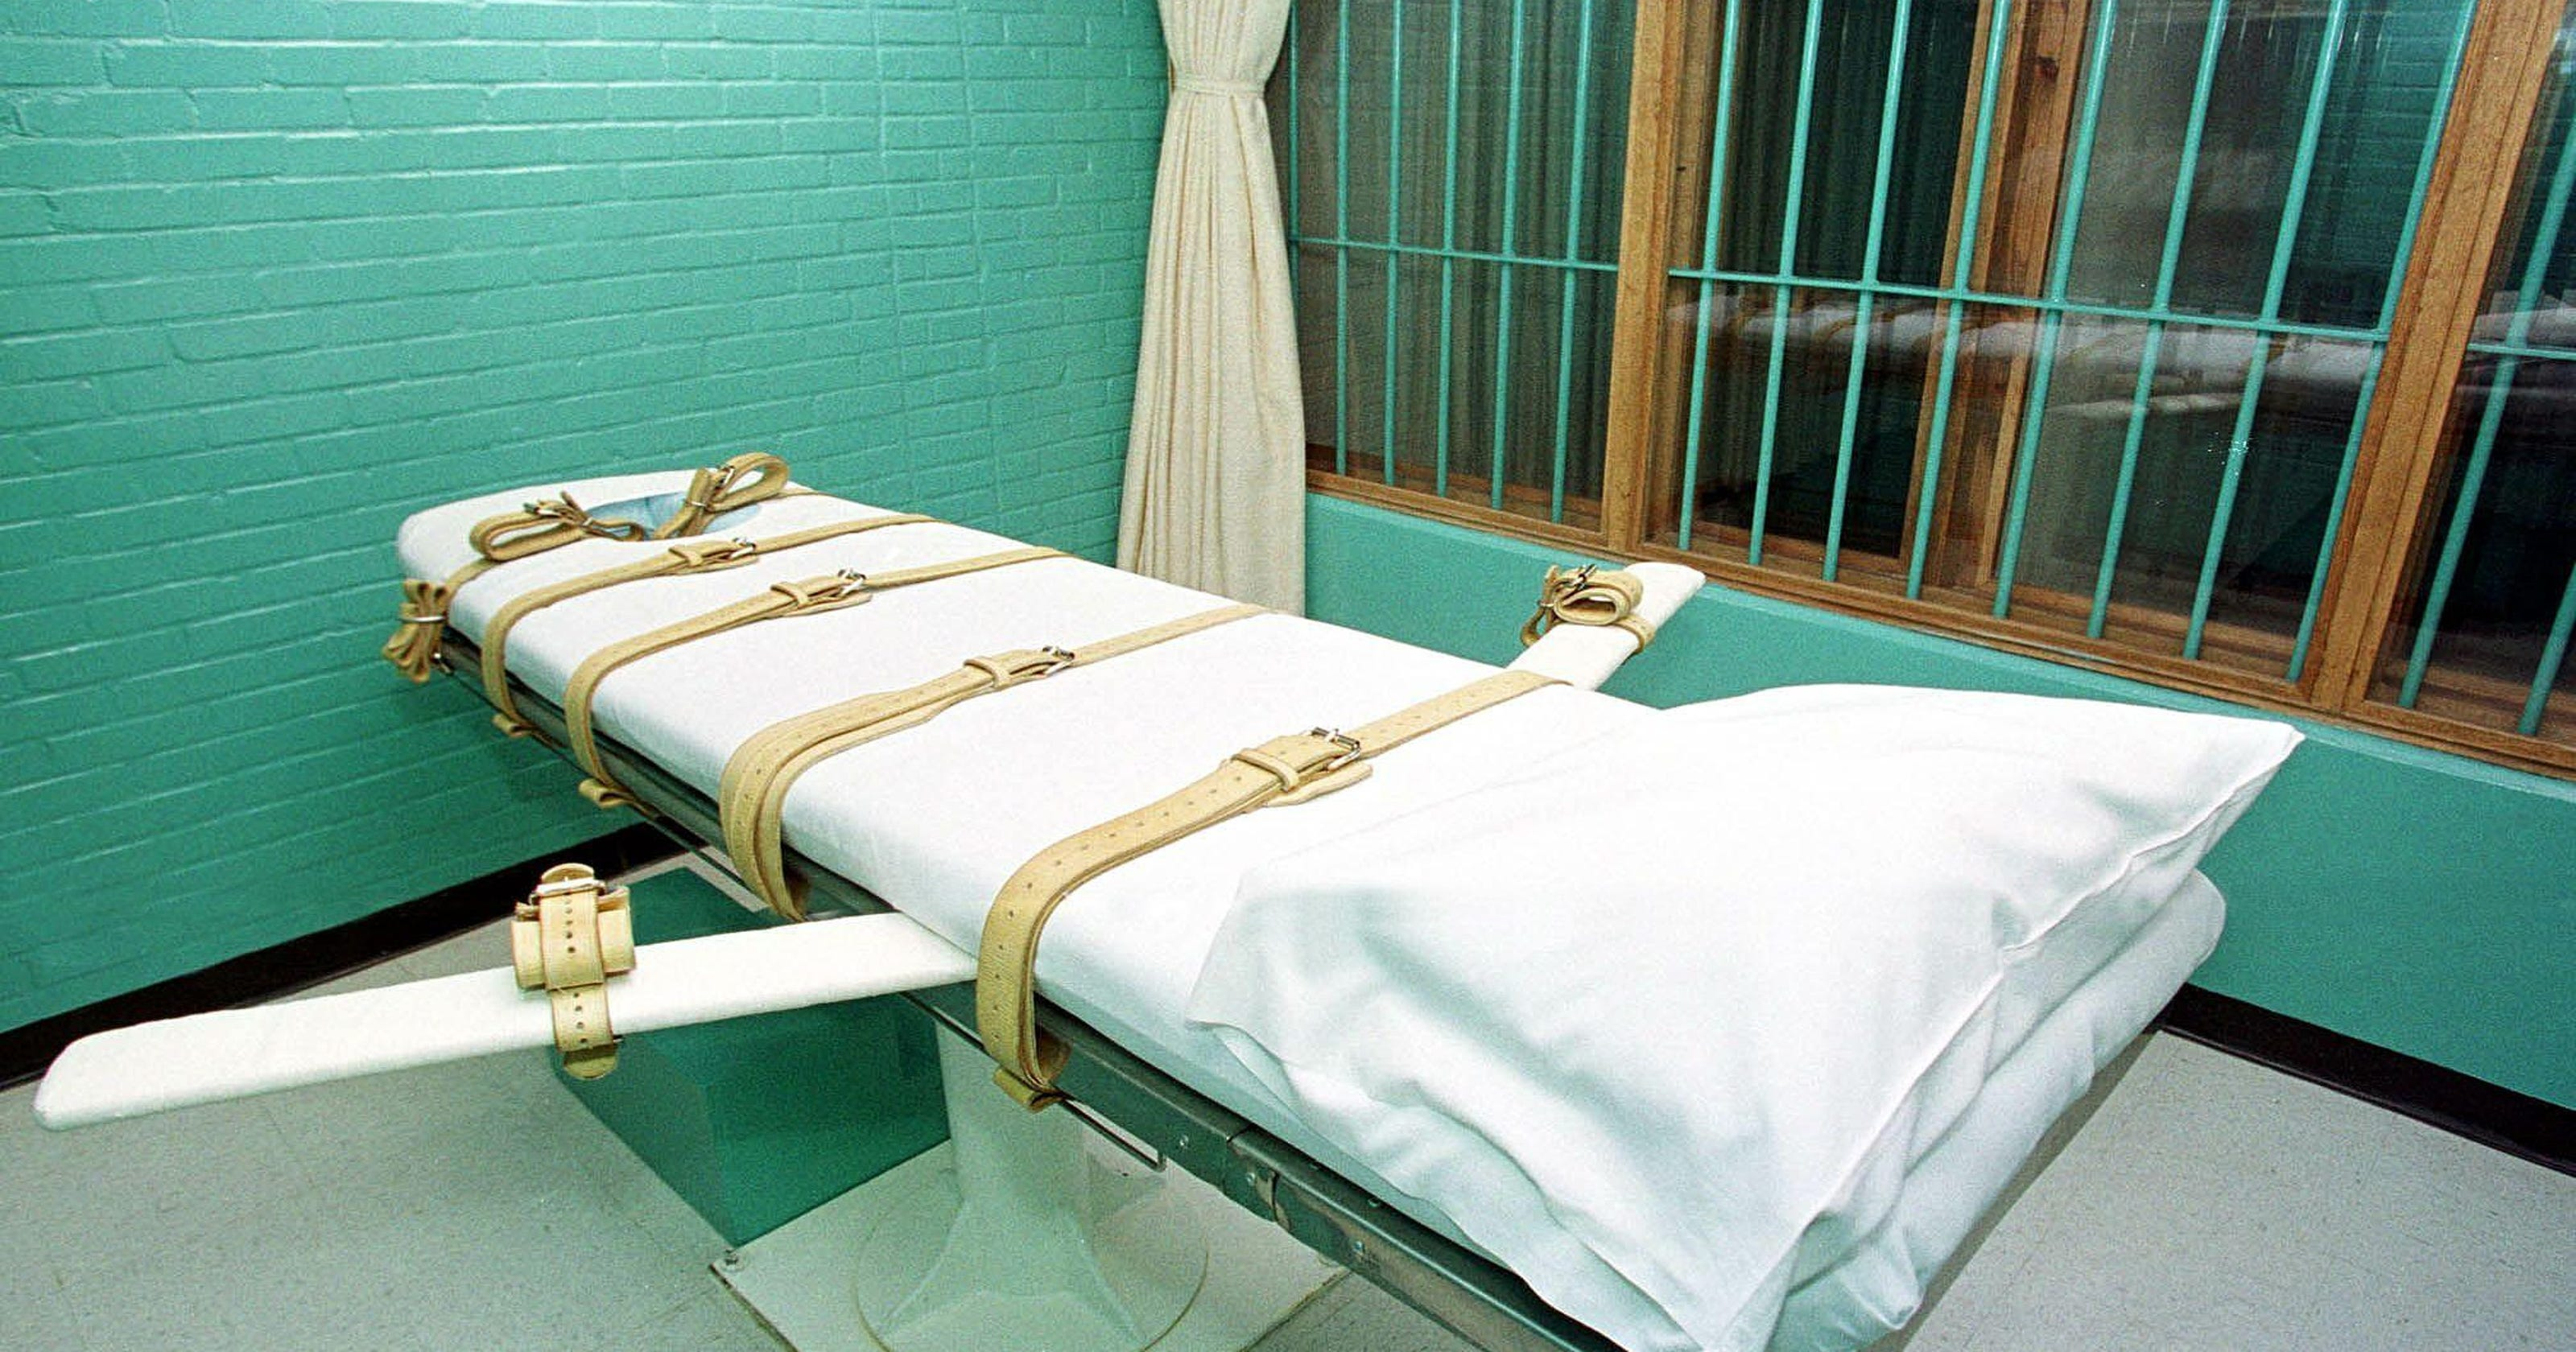 Iowa could see a death penalty debate in 2018 legislative session